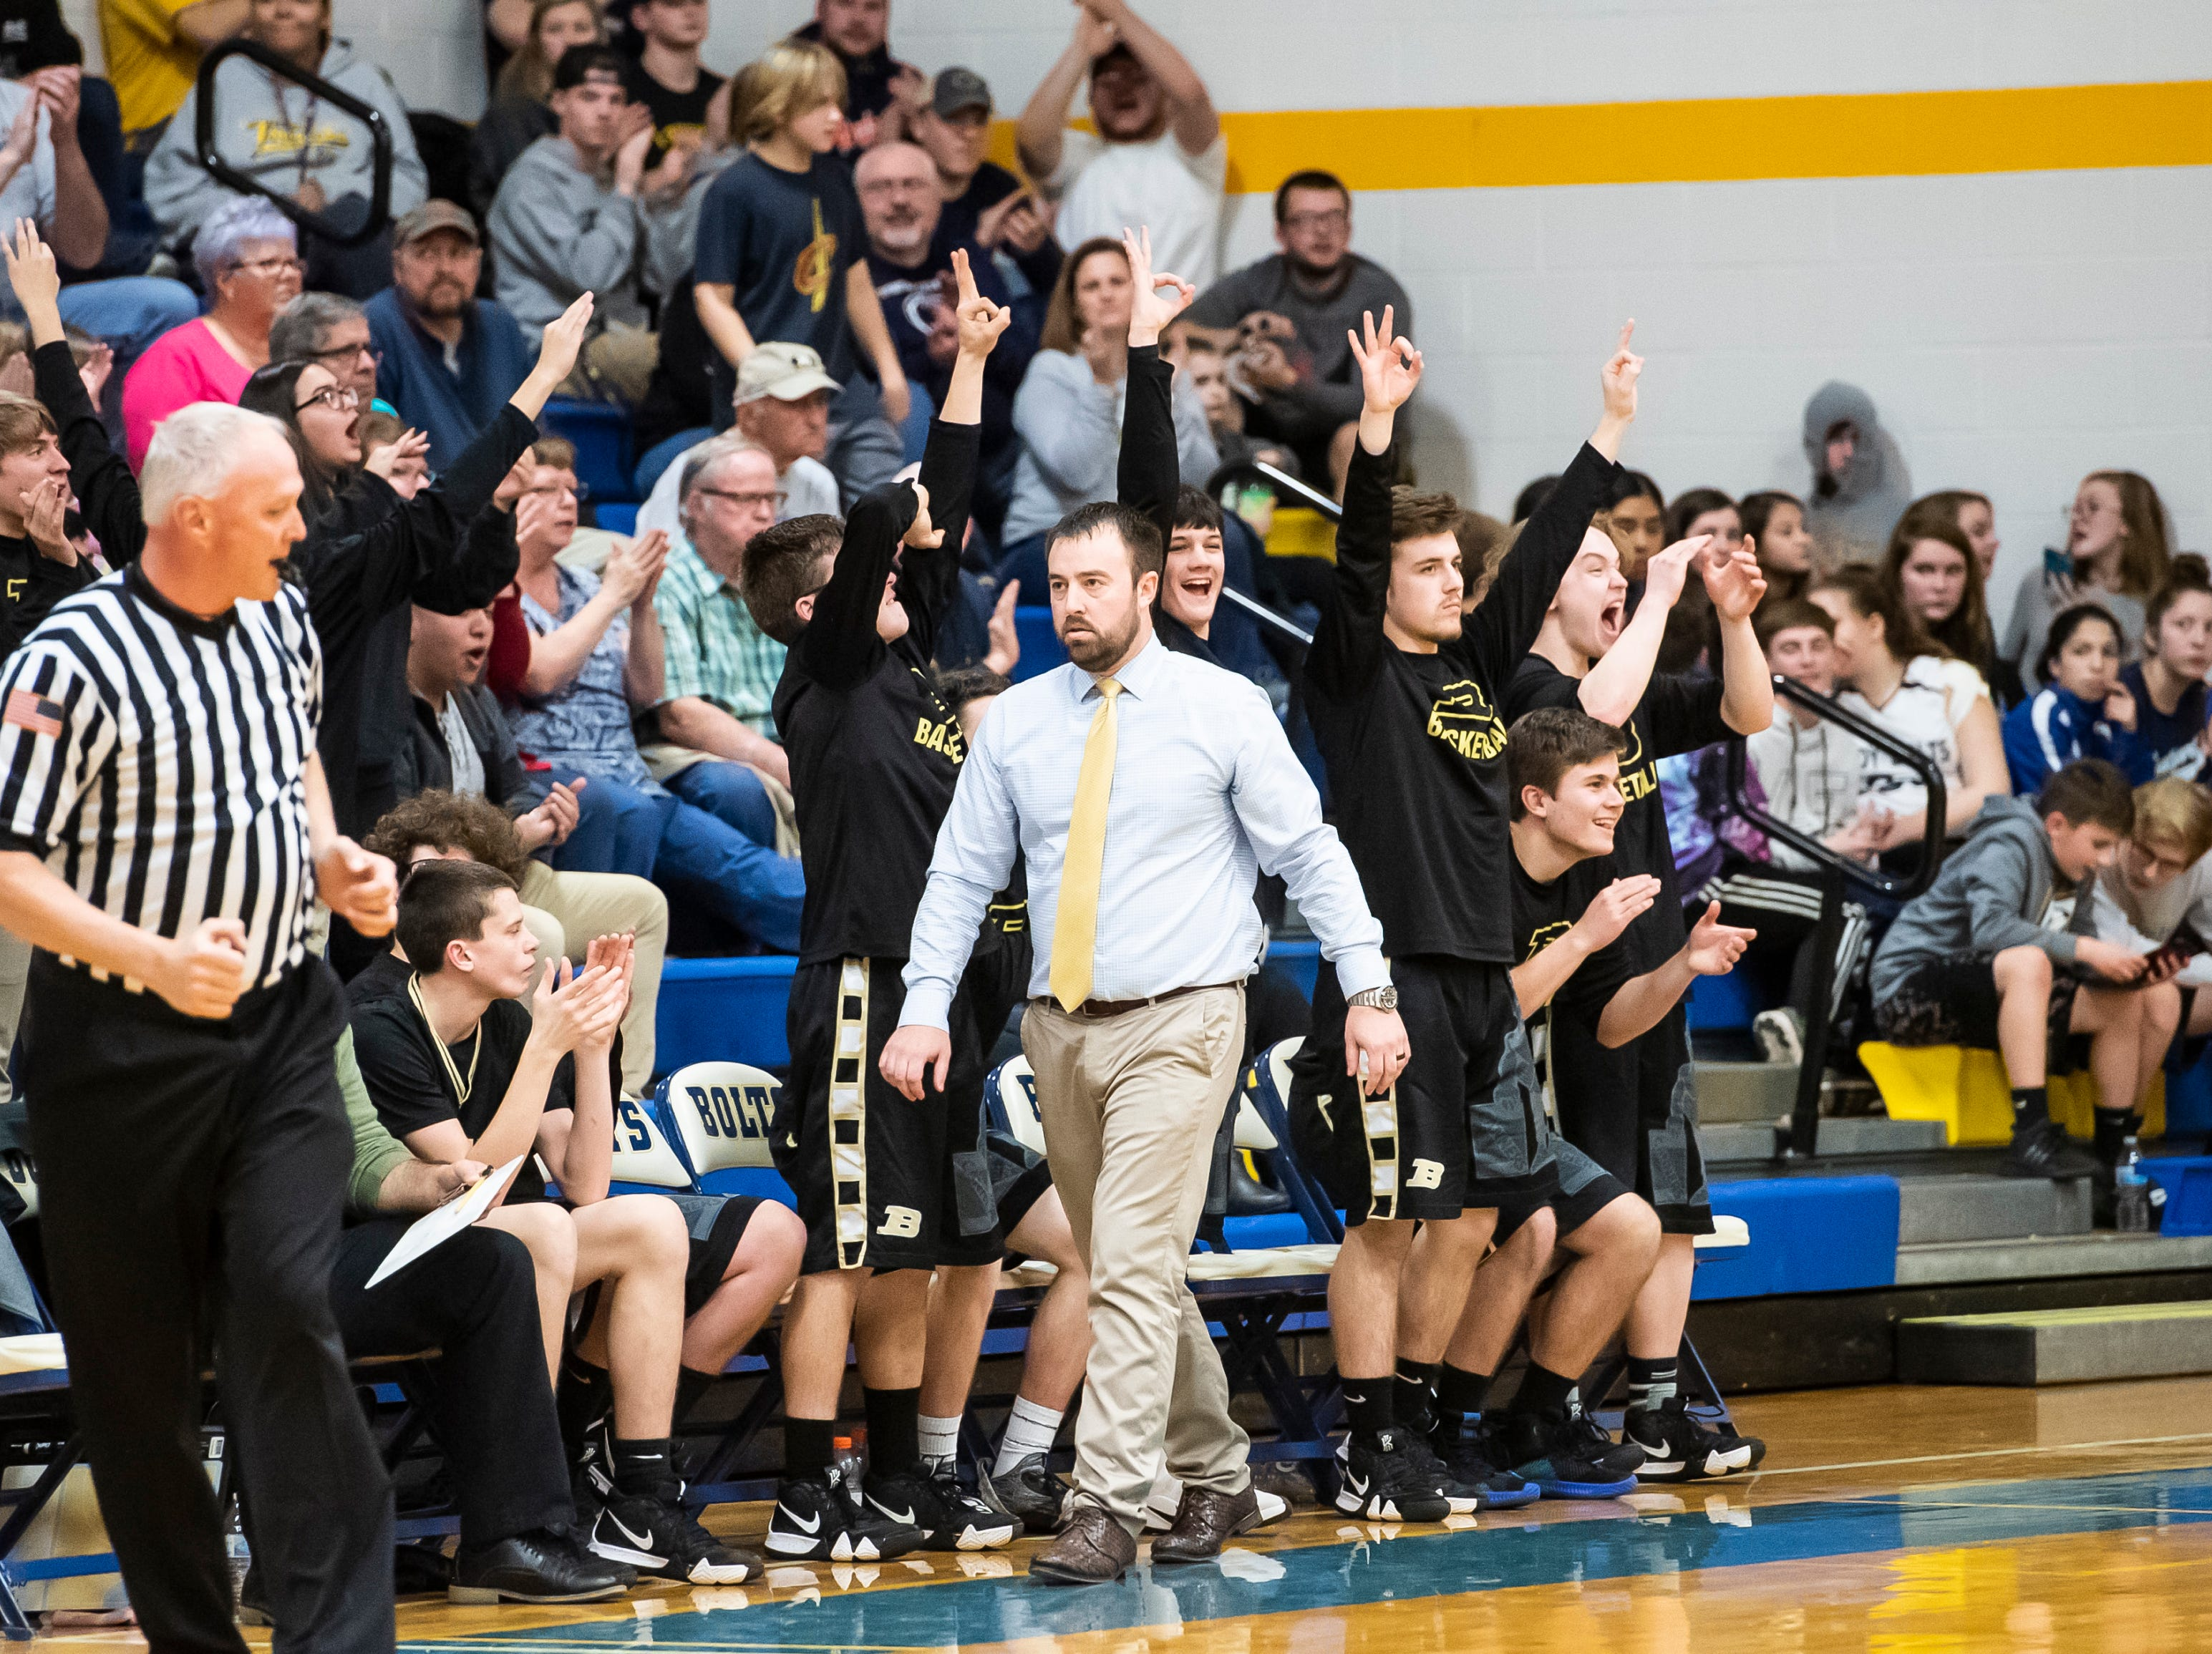 The Biglerville bench reacts after the Canners score a 3-pointer during play against Littlestown Tuesday, February 5, 2019. The Canners fell 54-46. .